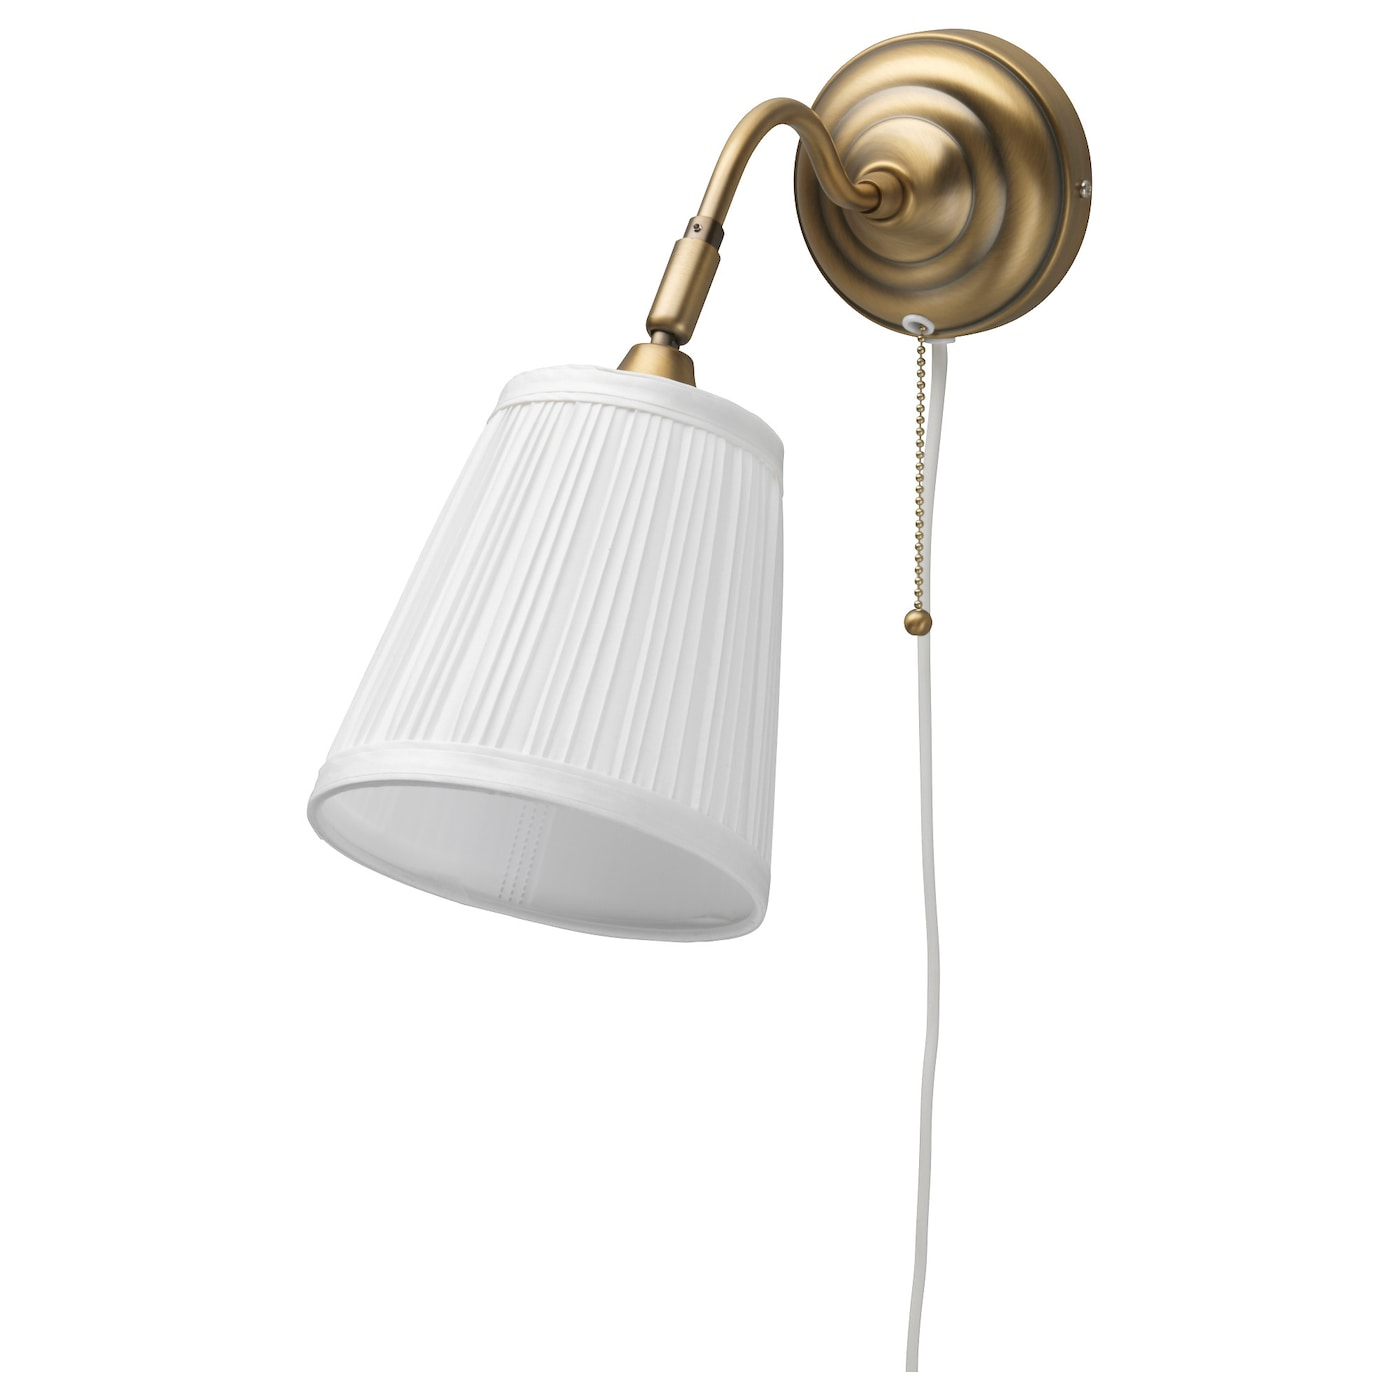 home wall lighting. IKEA ÅRSTID Wall Lamp The Textile Shade Provides A Diffused And Decorative Light. Home Lighting Y